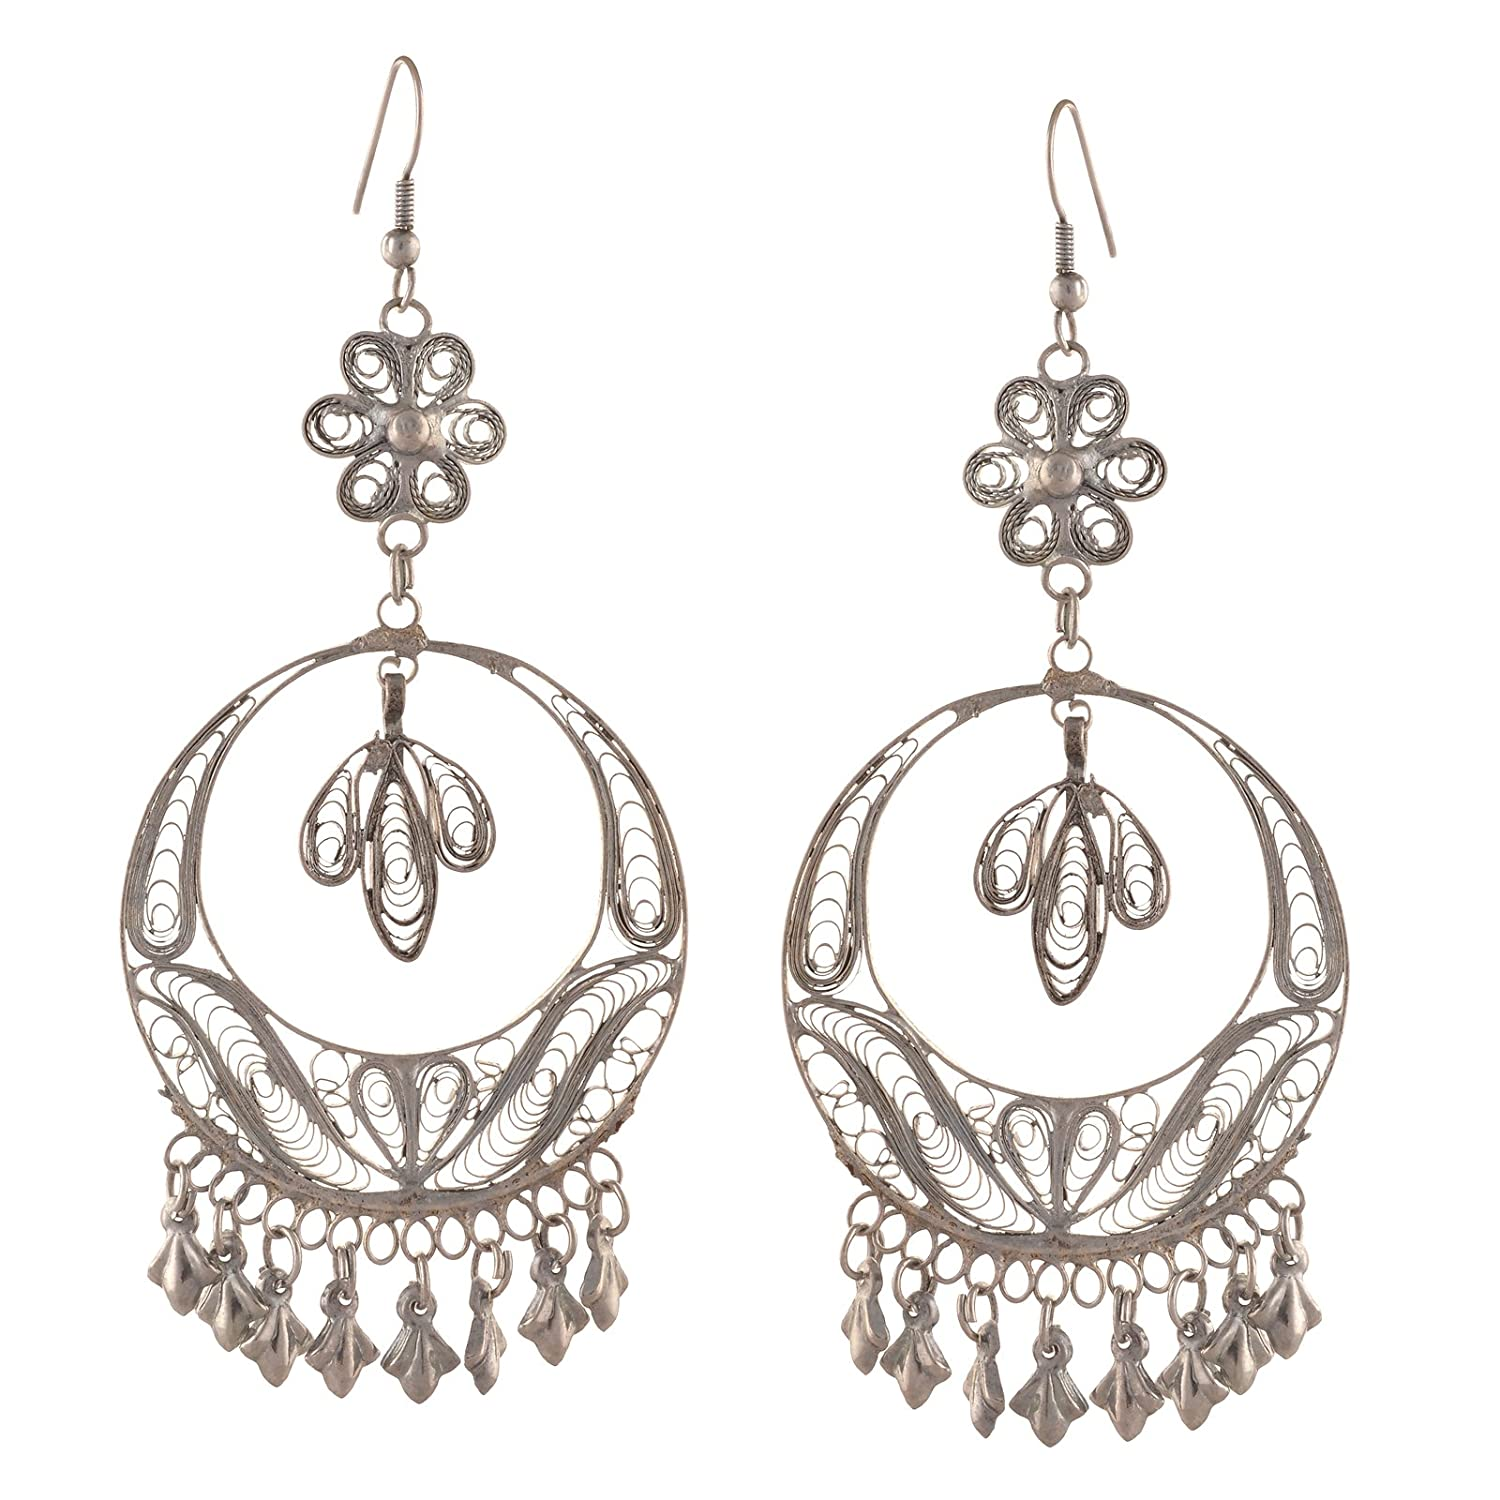 Oreleaa Fashion Silver Tone Floral Hook Chandbali Earrings for Women /& Girls For Girls and Women